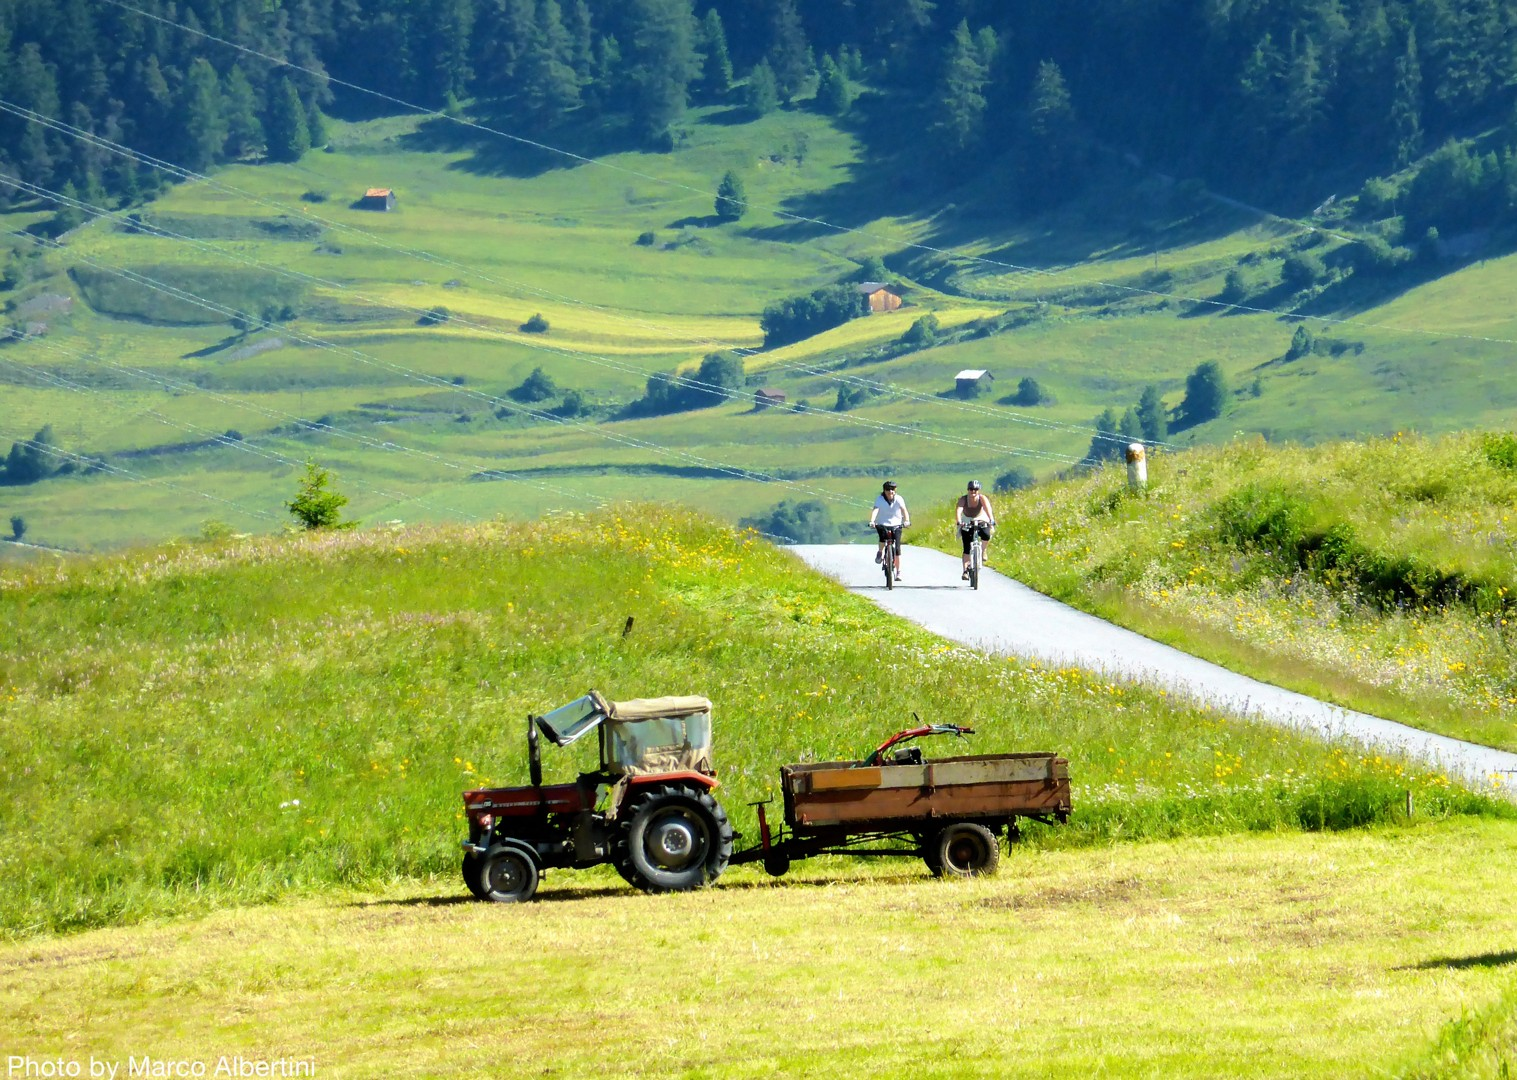 picturesque-leisurely-guided-cycling-italy.jpg - Austria and Italy - La Via Claudia - Guided Leisure Cycling Holiday - Italia Leisure and Family Cycling